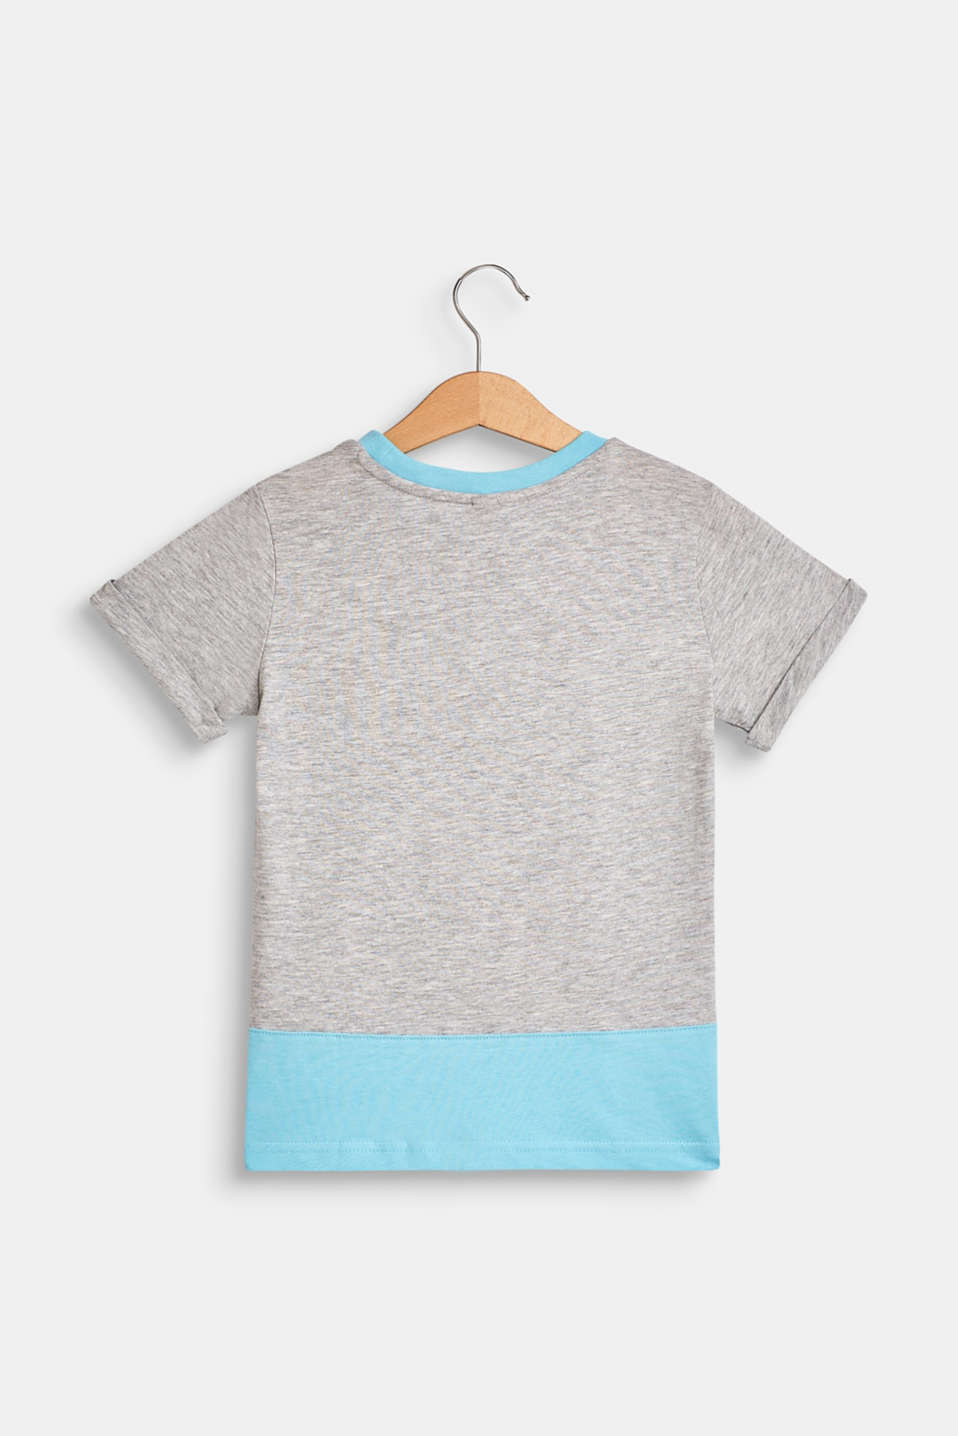 T-shirt with a summer print, 100% cotton, HEATHER GREY, detail image number 1